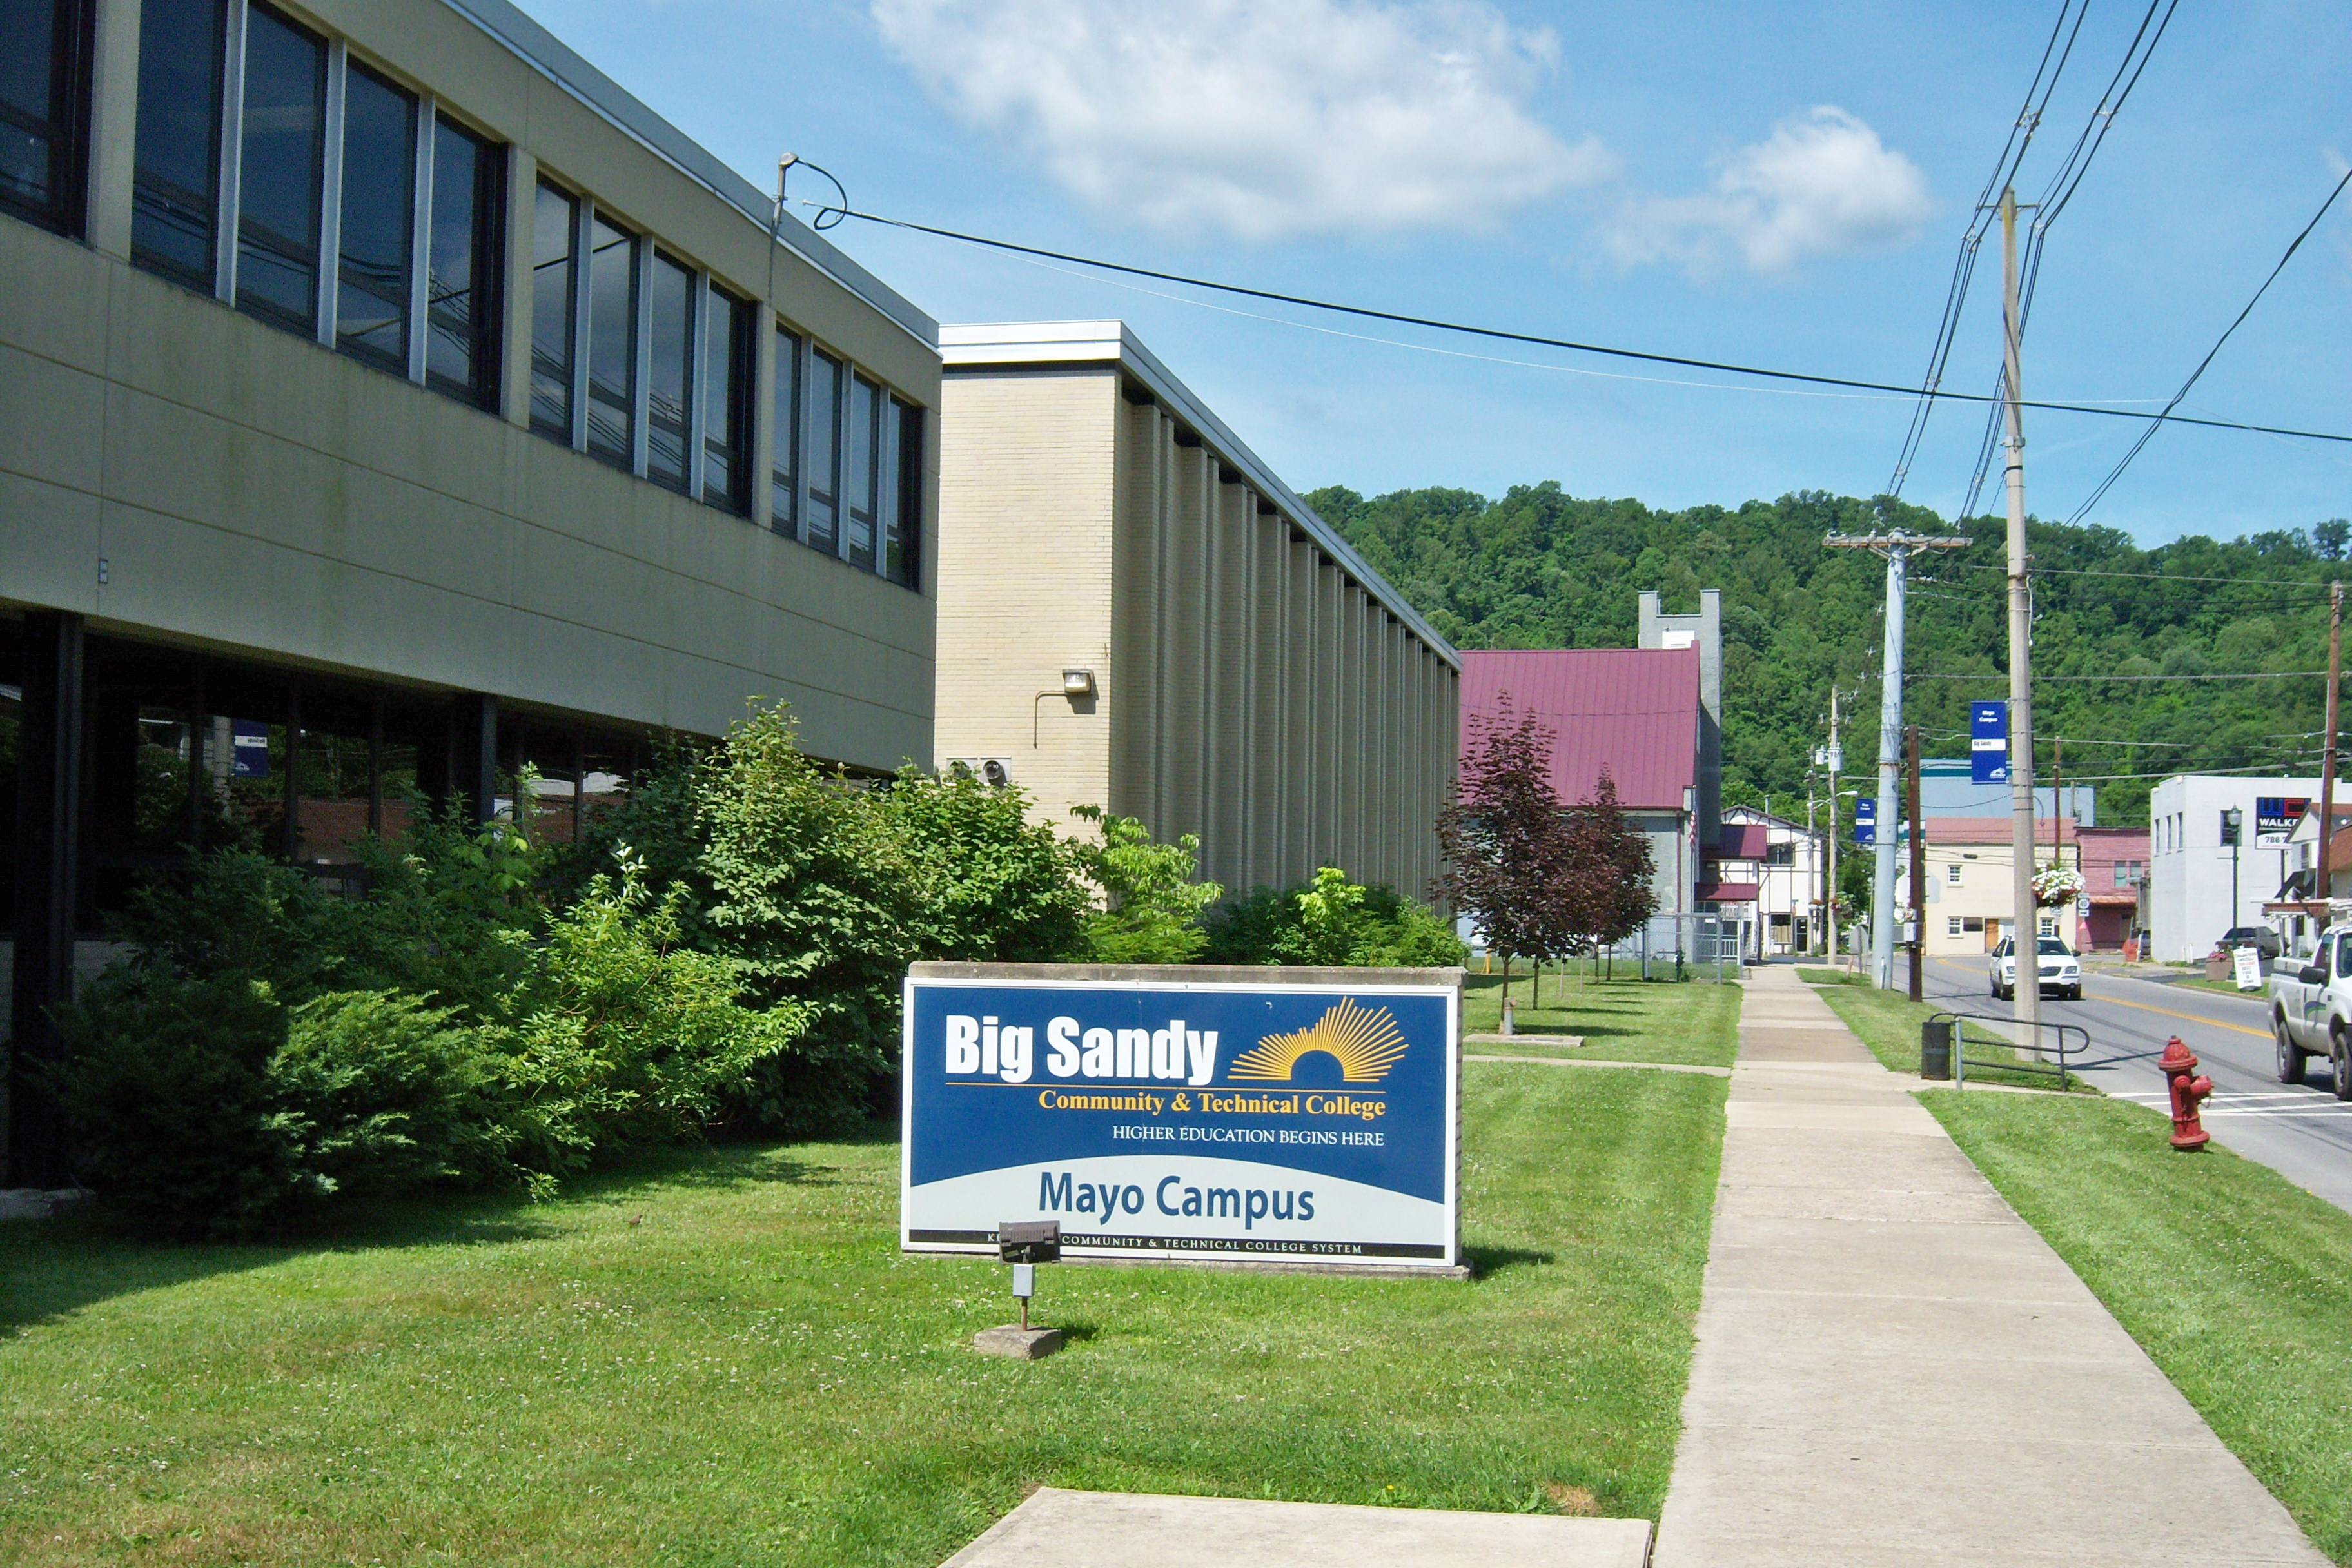 Big Sandy Community and Technical College - Wikipedia